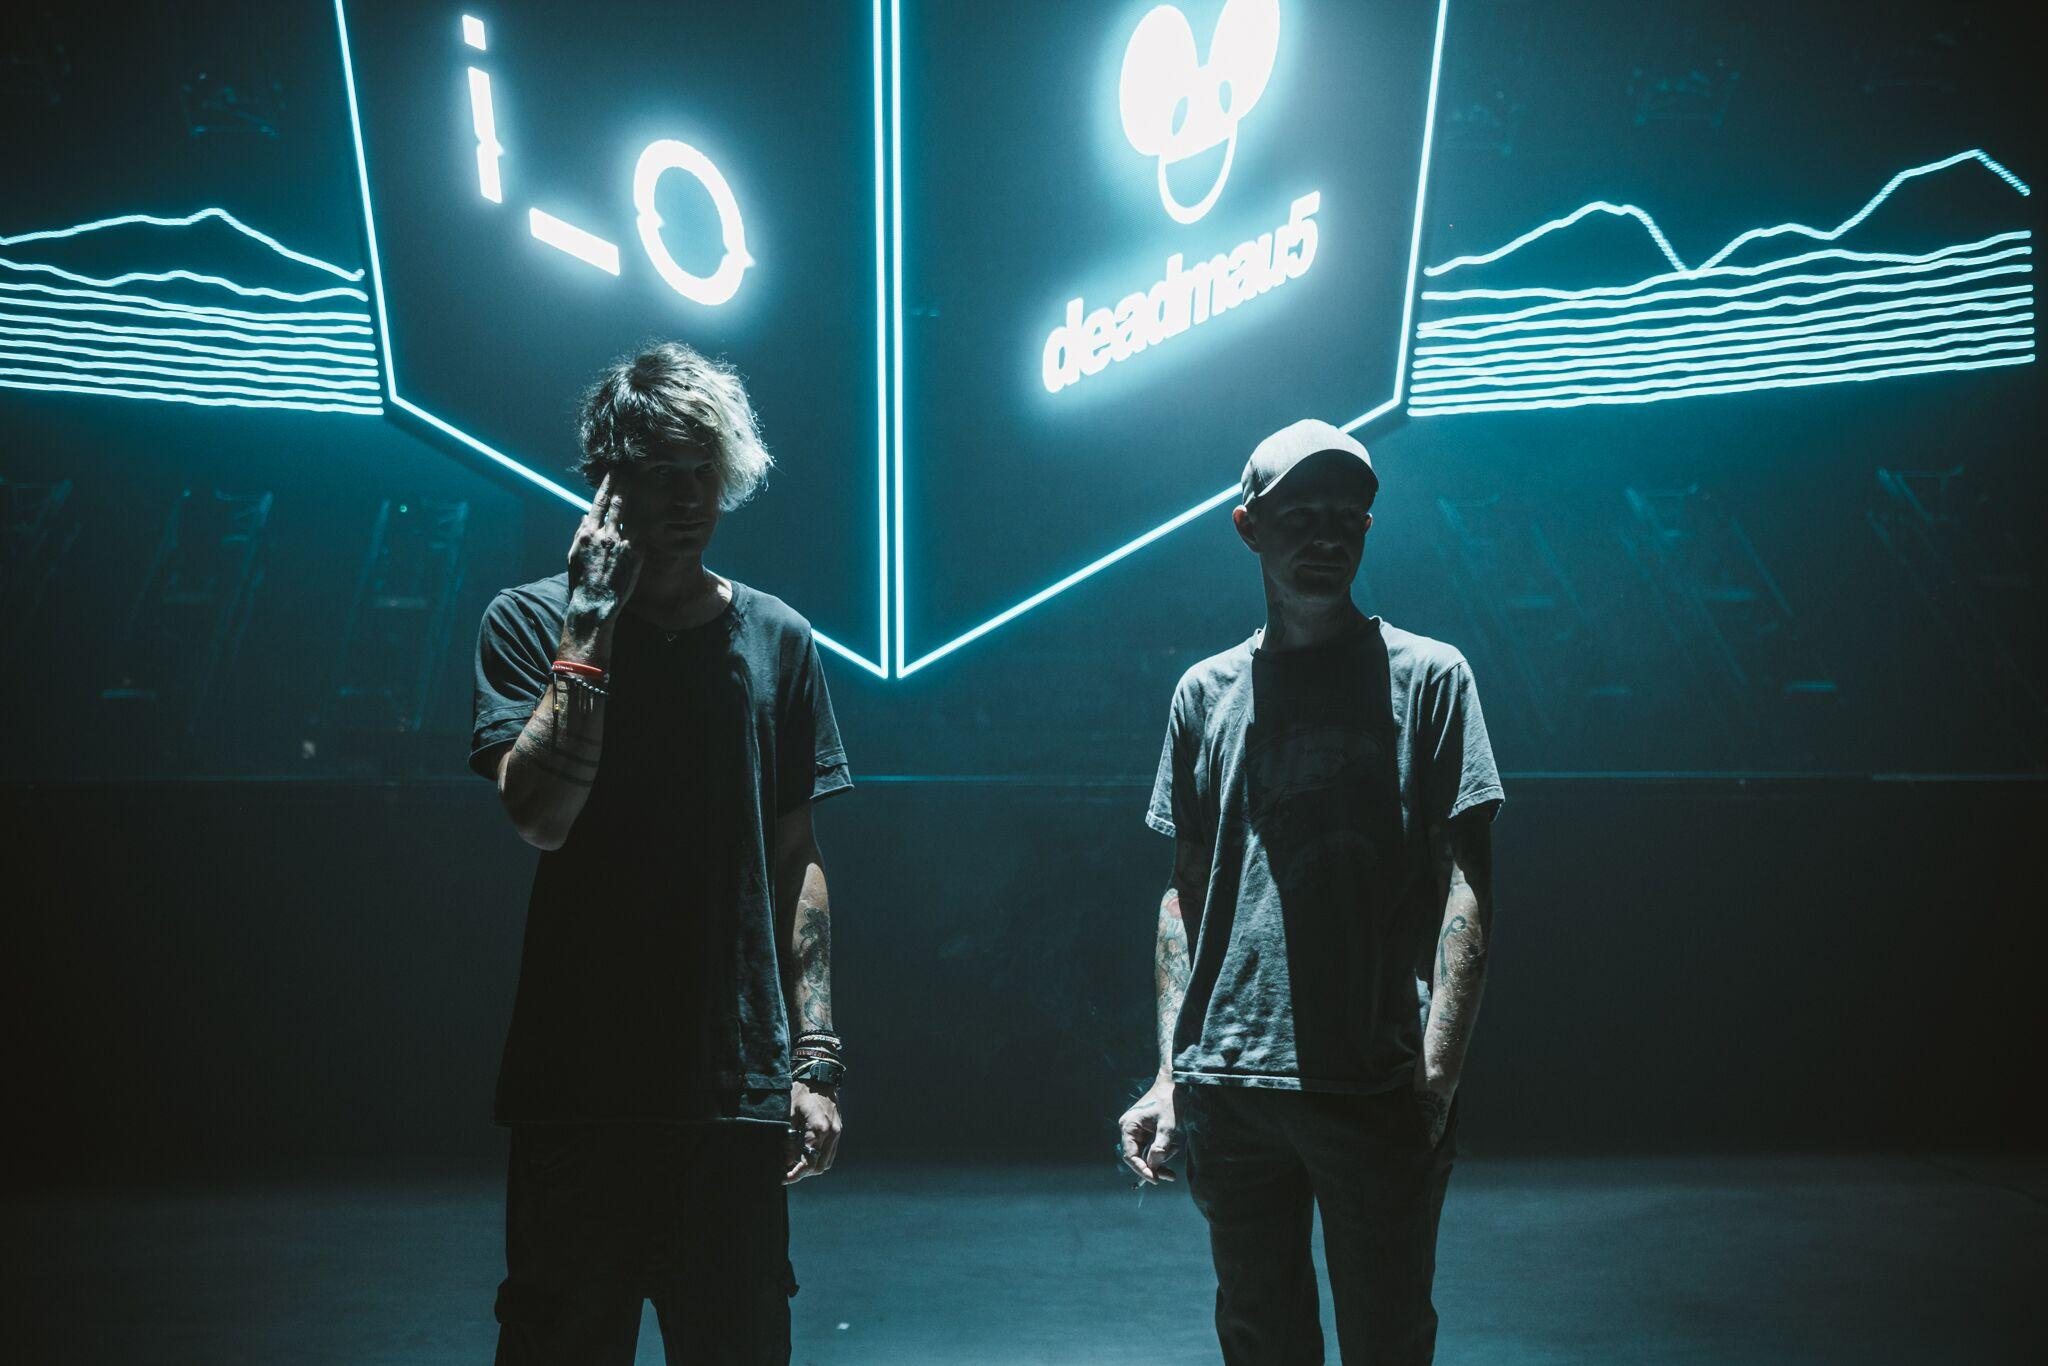 i_o photographed with deadmau5 by Leah Sems at recent cubev3 tour production rehearsals in Toronto, August 2019